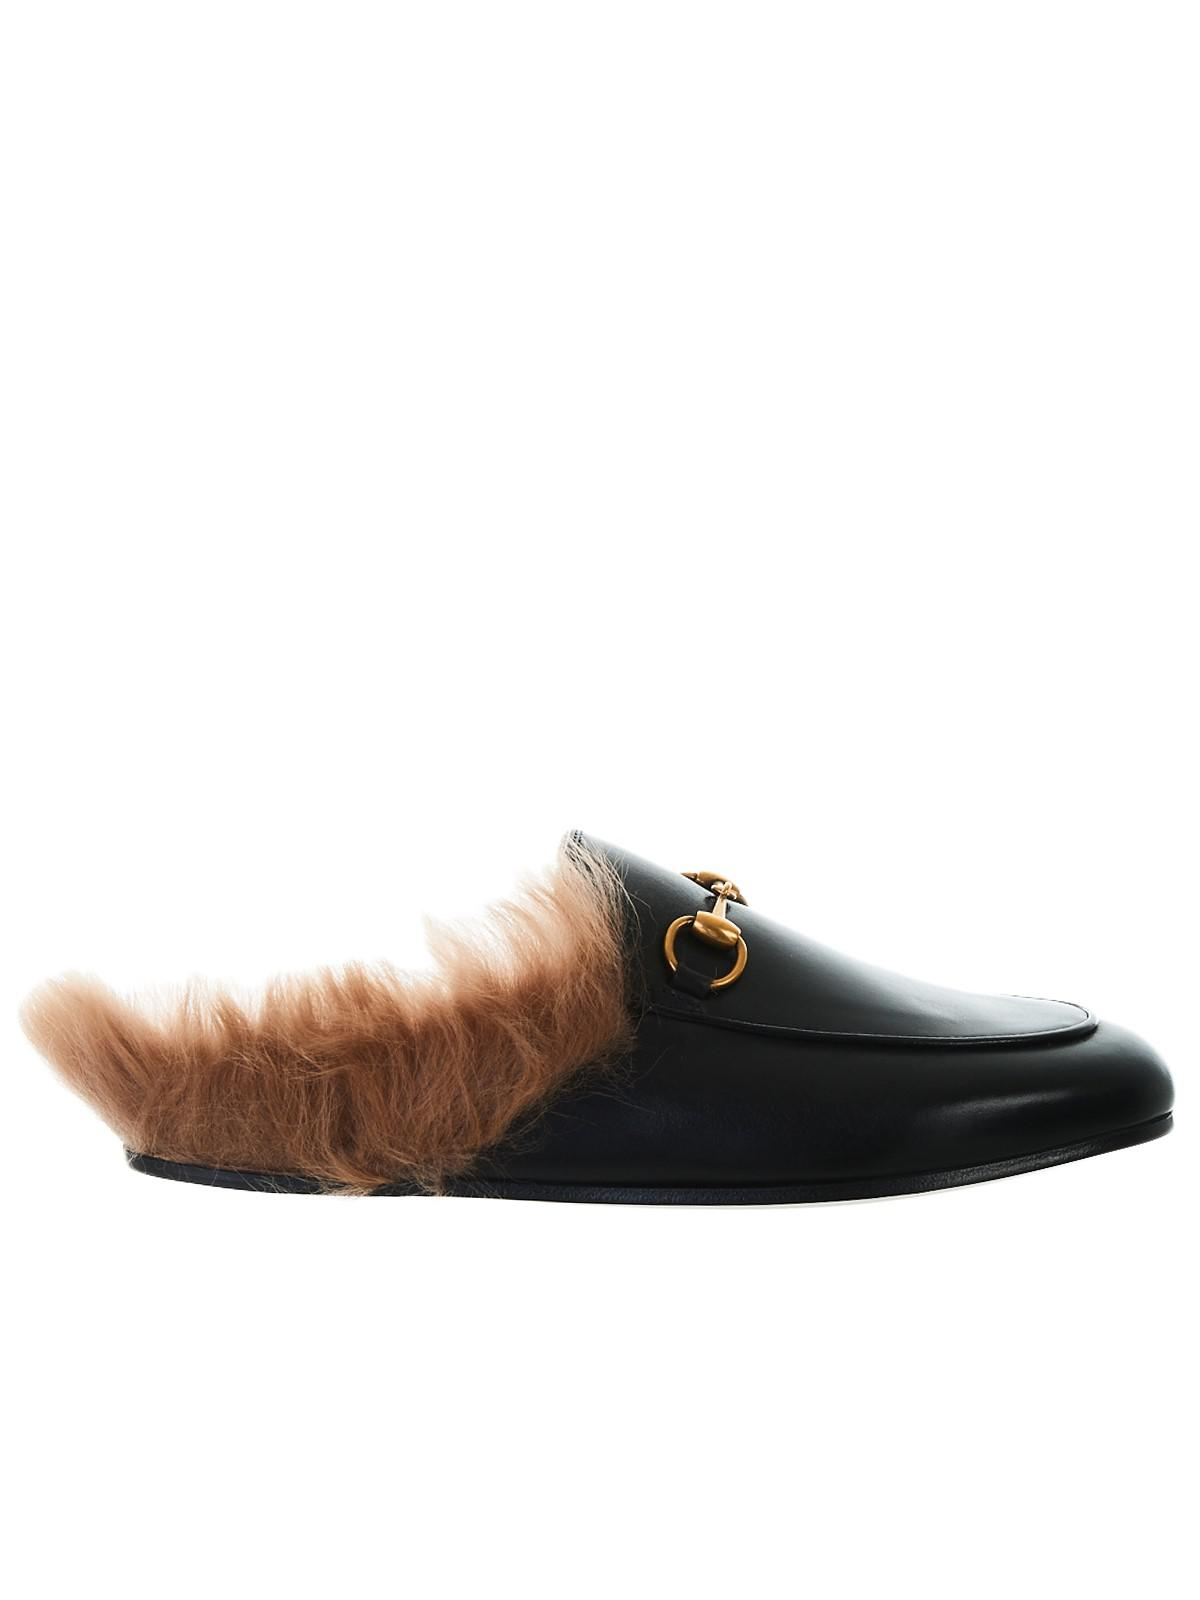 ed446f512ac Lyst - Gucci Leather Princetown Mules in Black - Save 26%